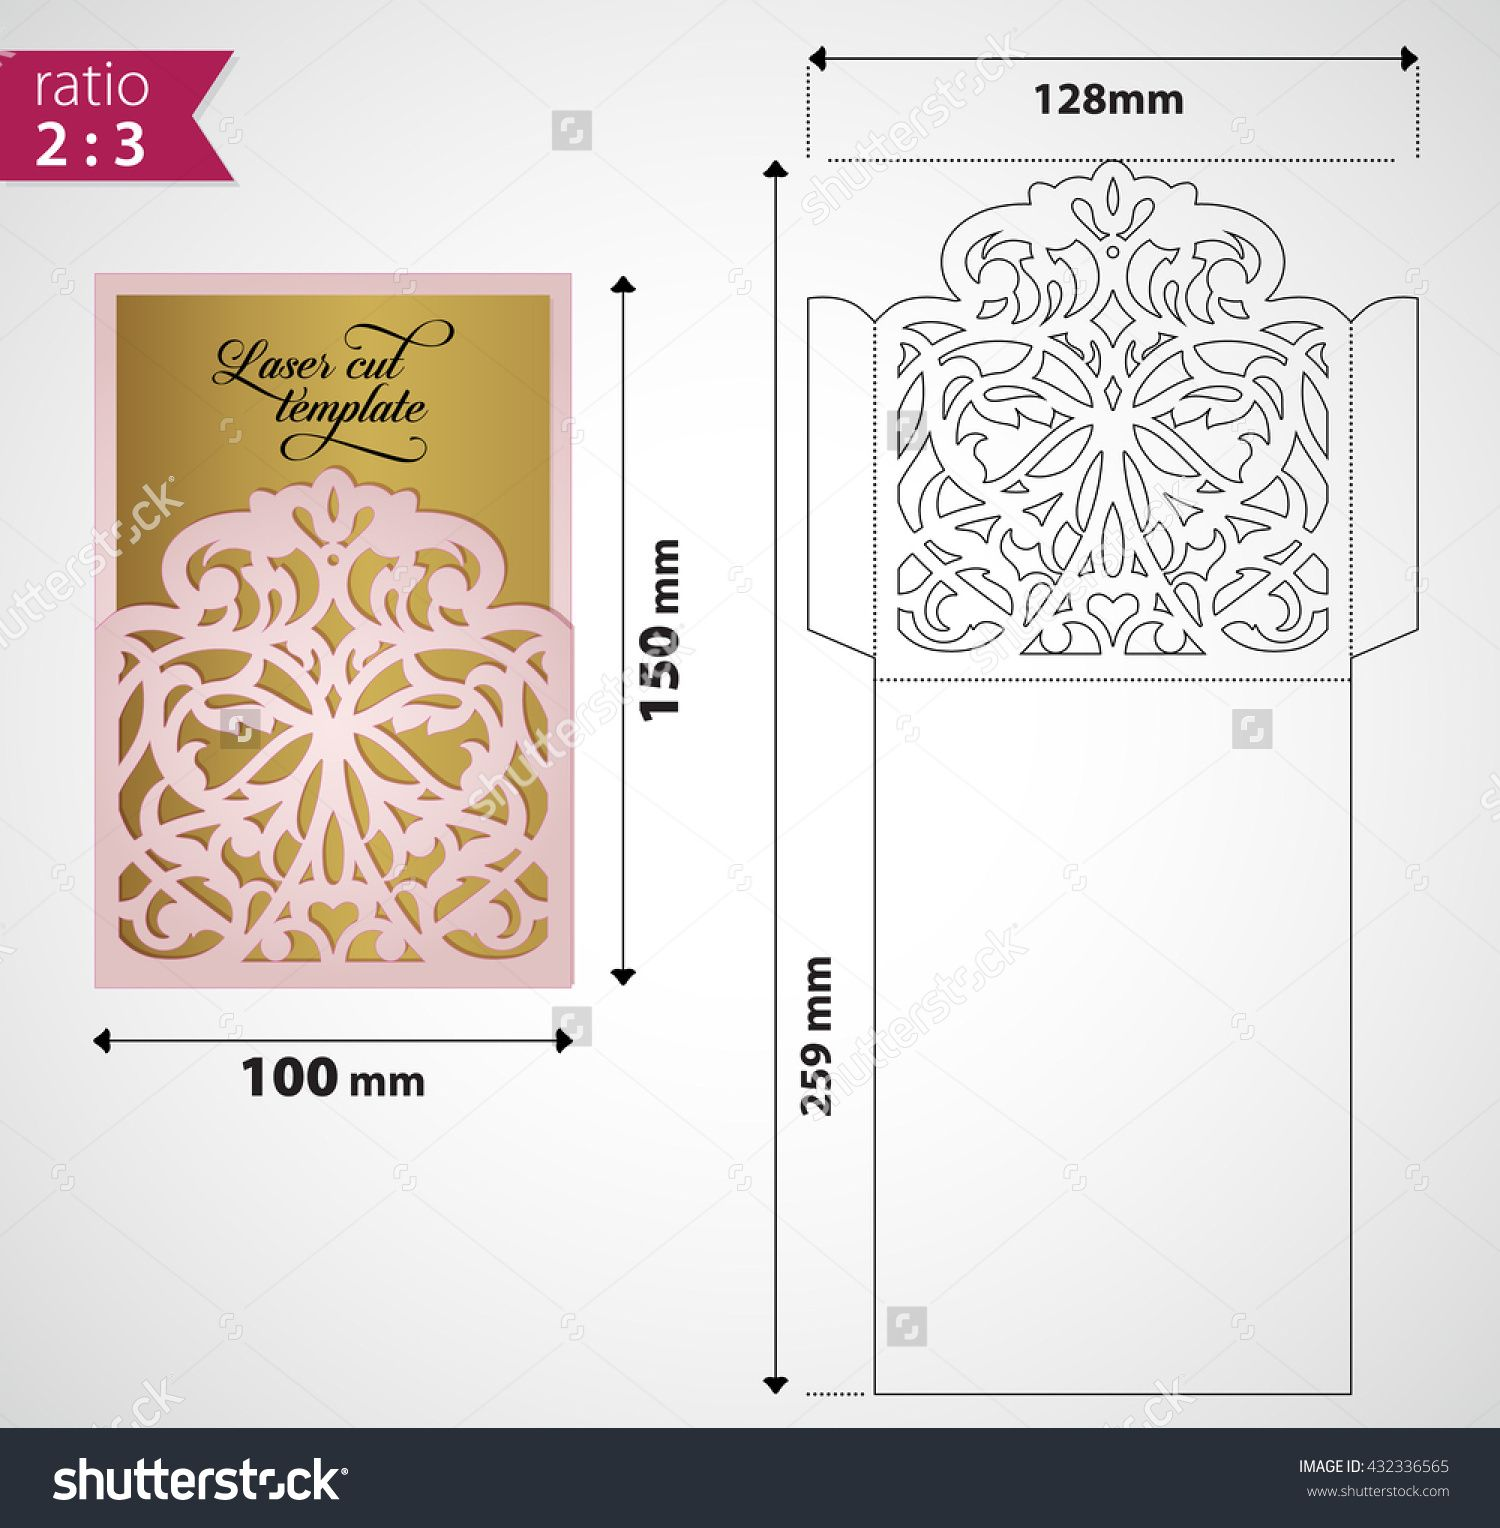 Digital vector file for laser cutting. Laser cut swirly ornate ...